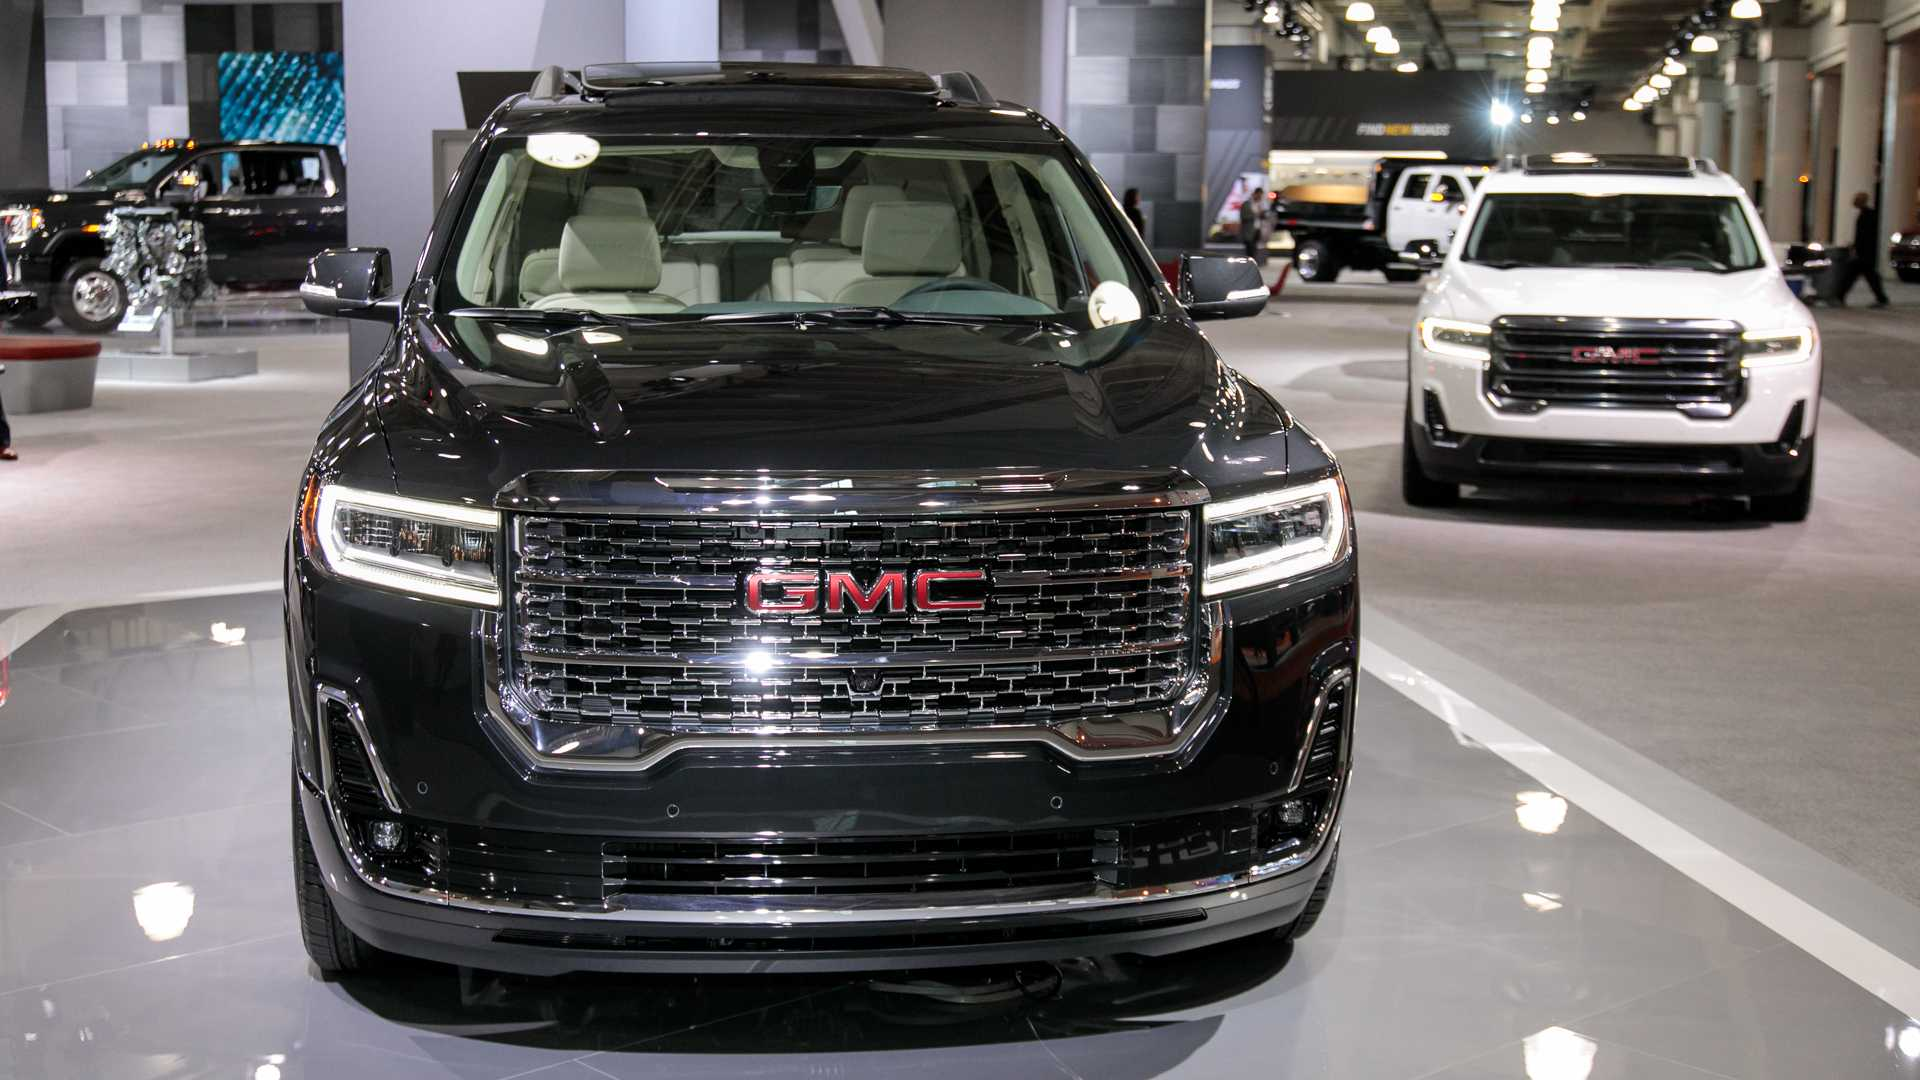 85 A New Gmc Acadia 2020 Redesign and Review